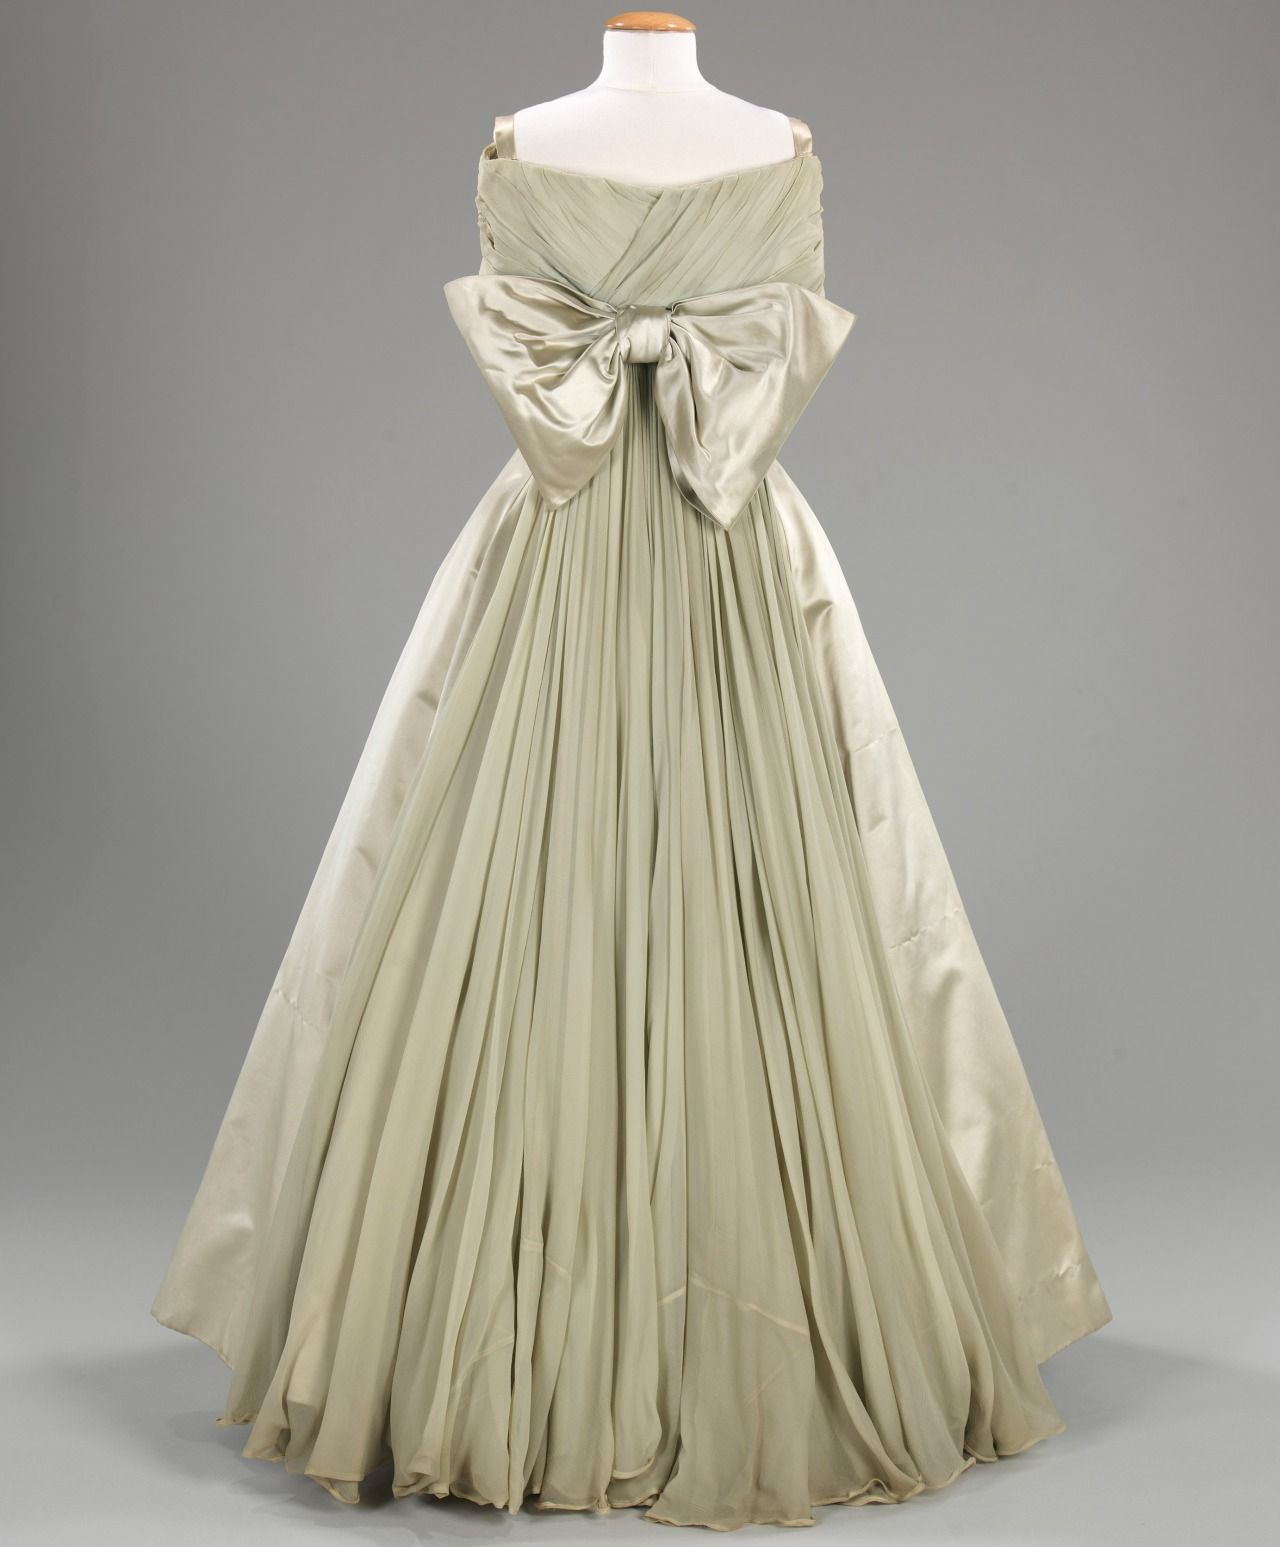 Ball gown fashions of the past pinterest ball gowns